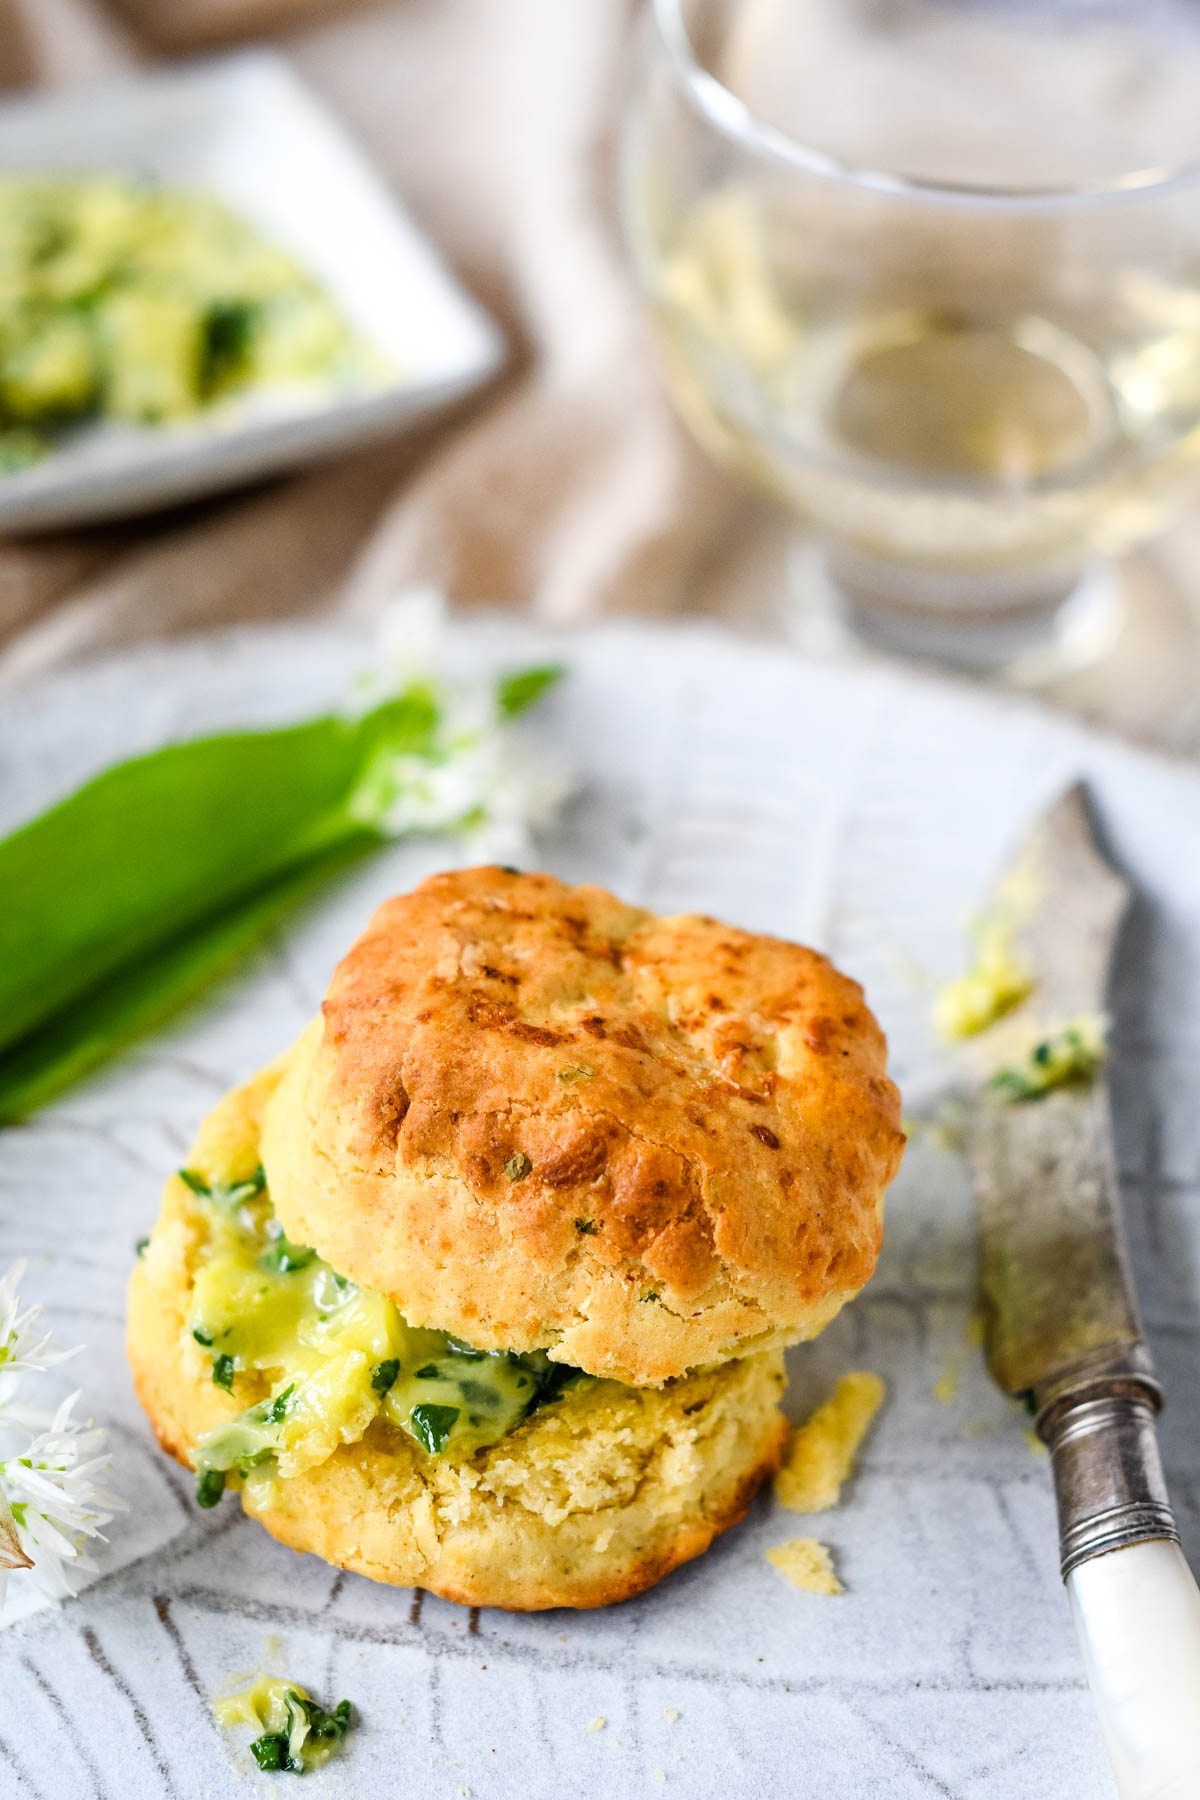 butter on a scone with wild garlic leaves and flowers at the side